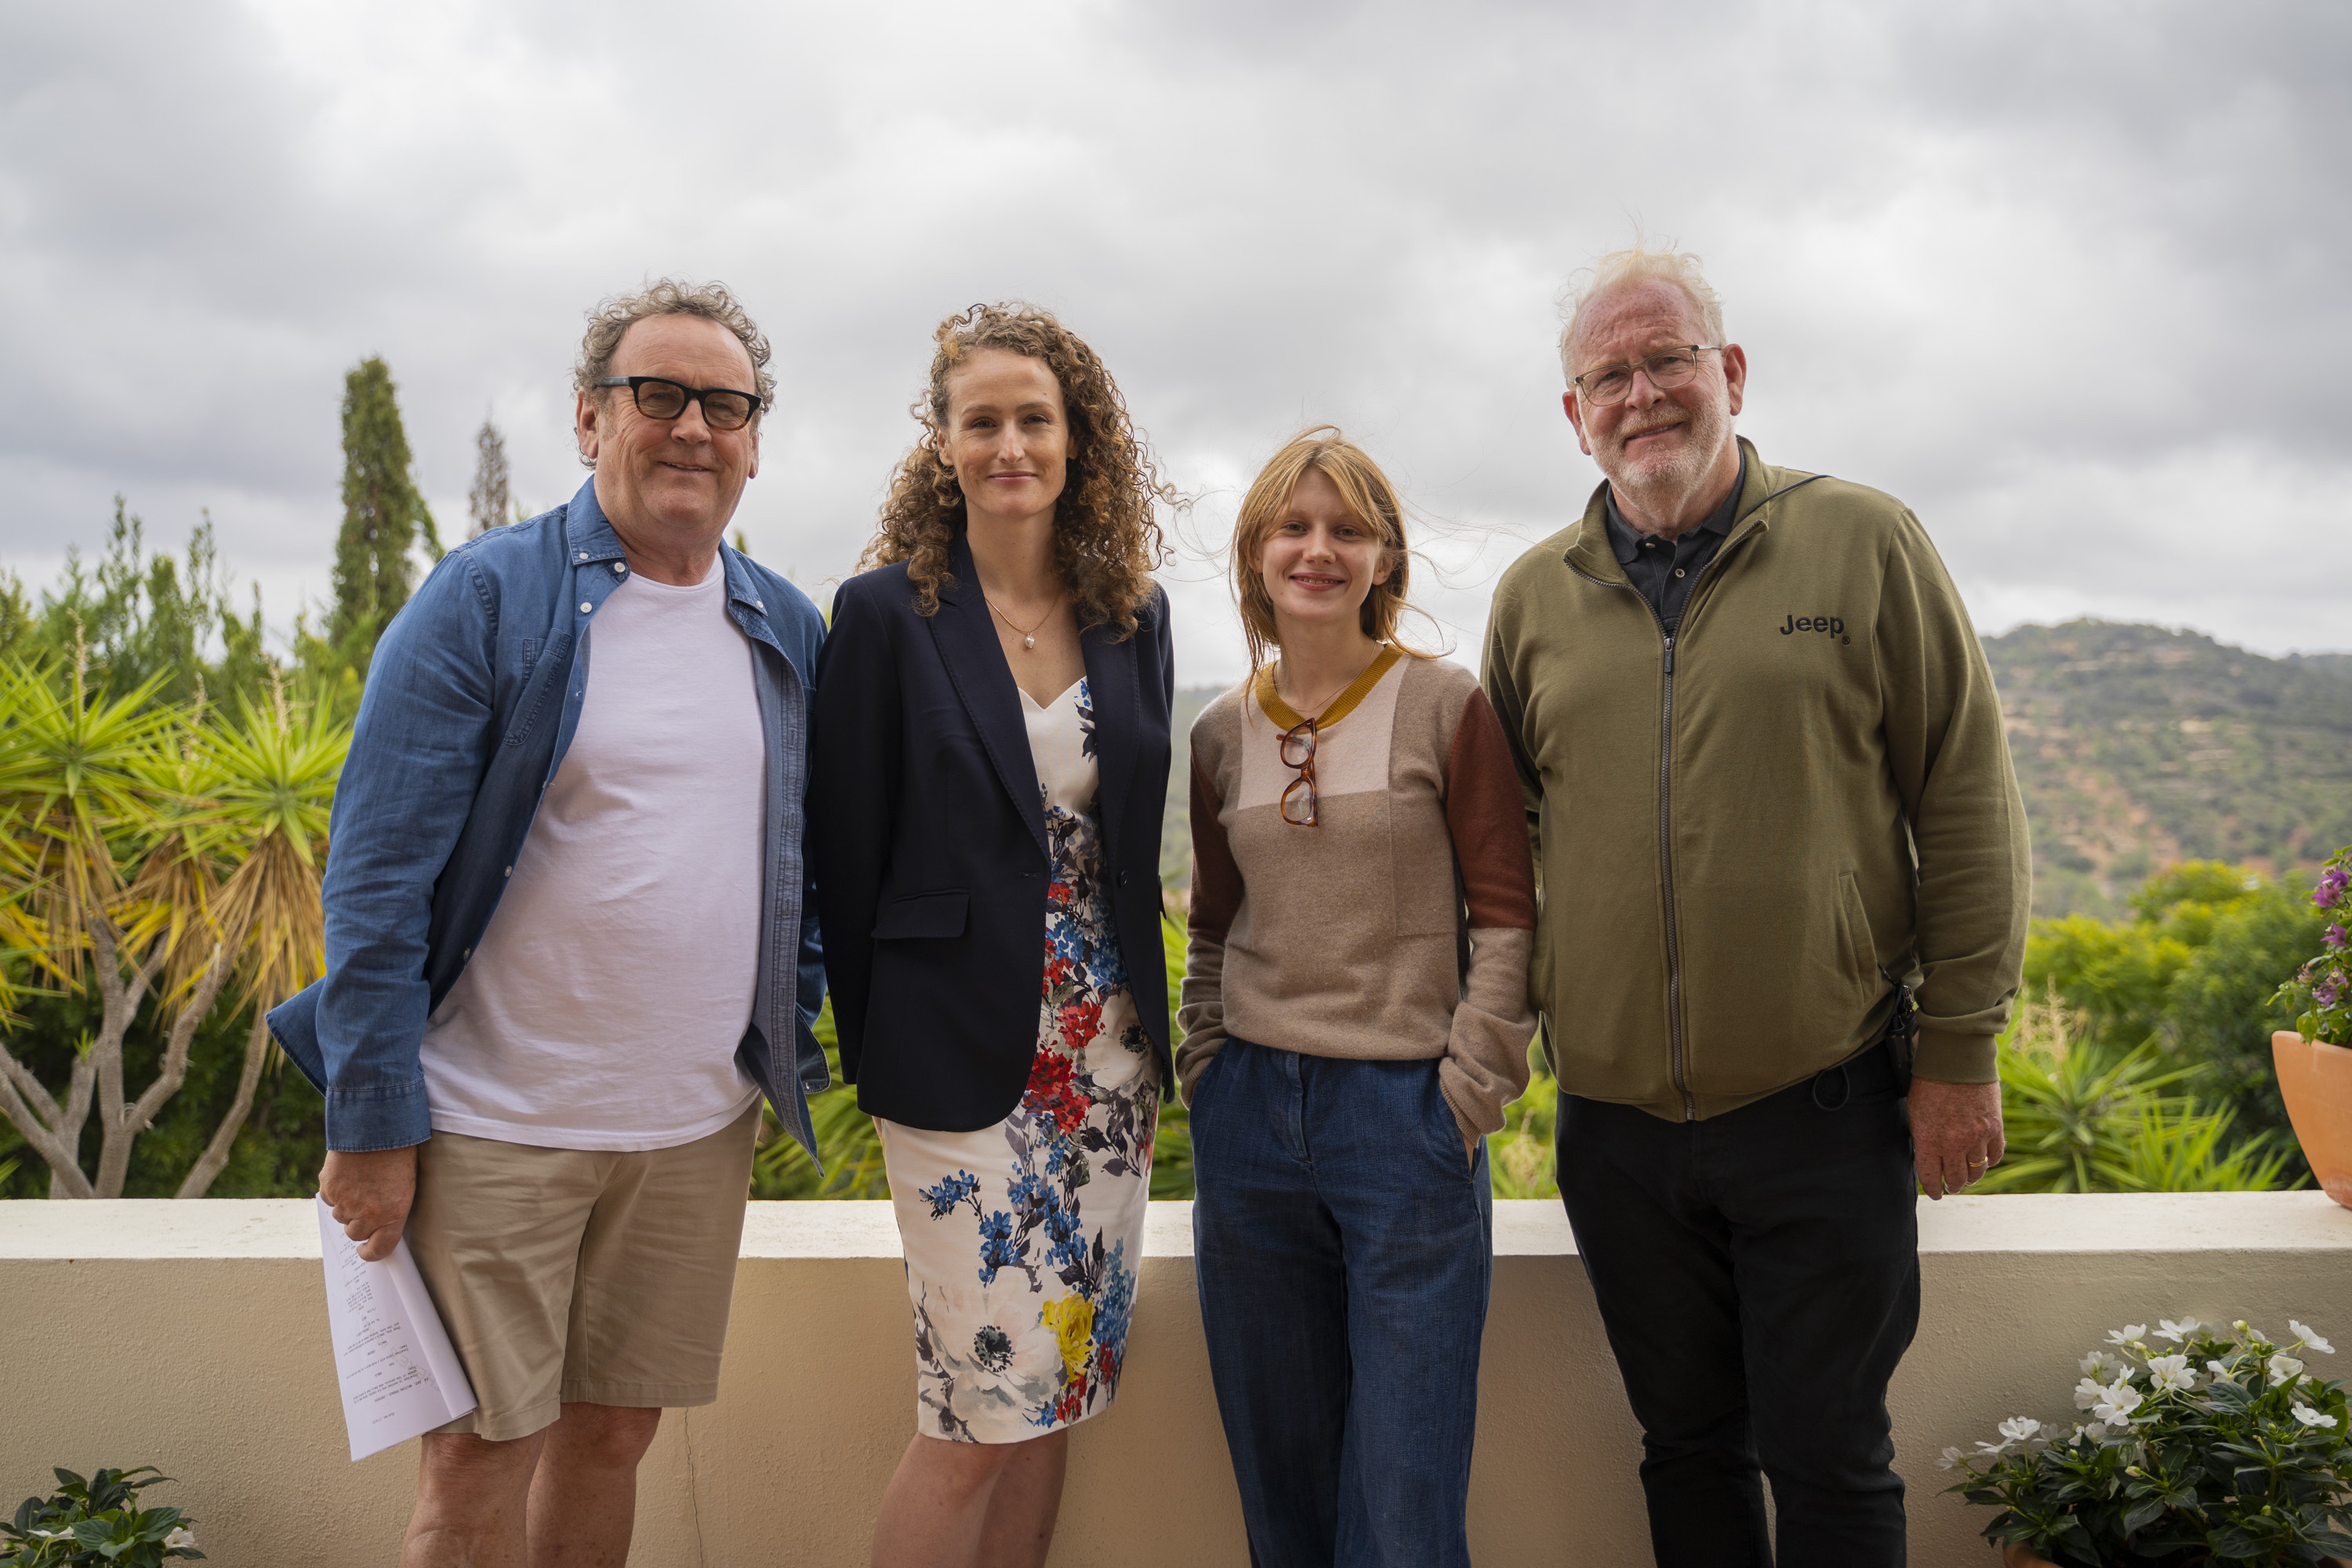 'There's Always Hope': Colm Meaney, Kate Ashfield & Newcomer Hannah Chinn Lead Drama Now Underway In Portugal